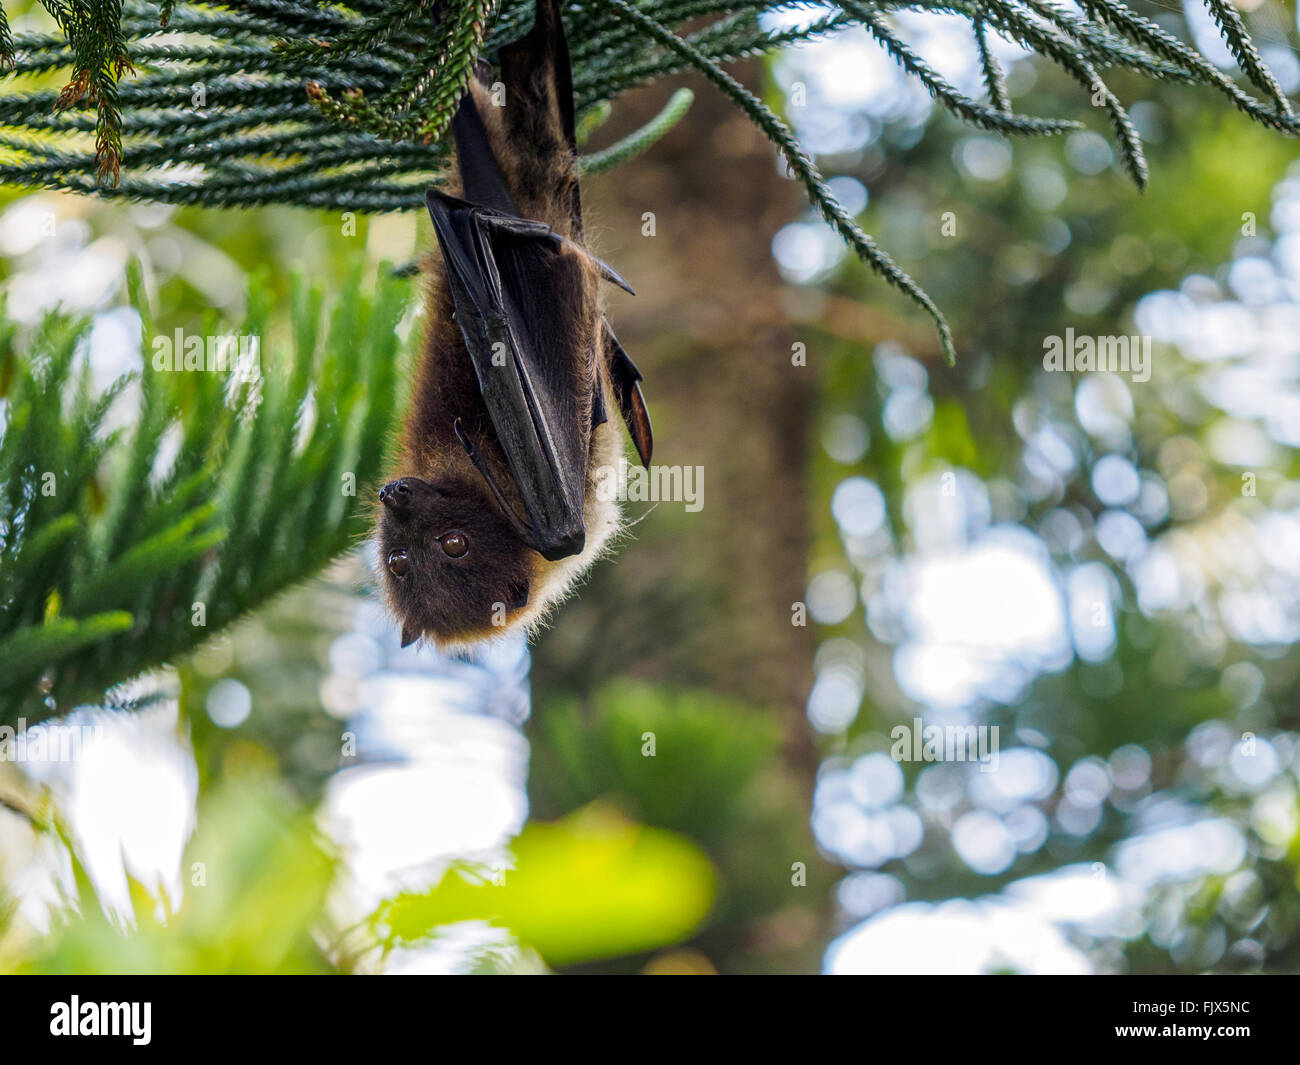 Low Angle View Of Fruit Bat Hanging From Tree - Stock Image